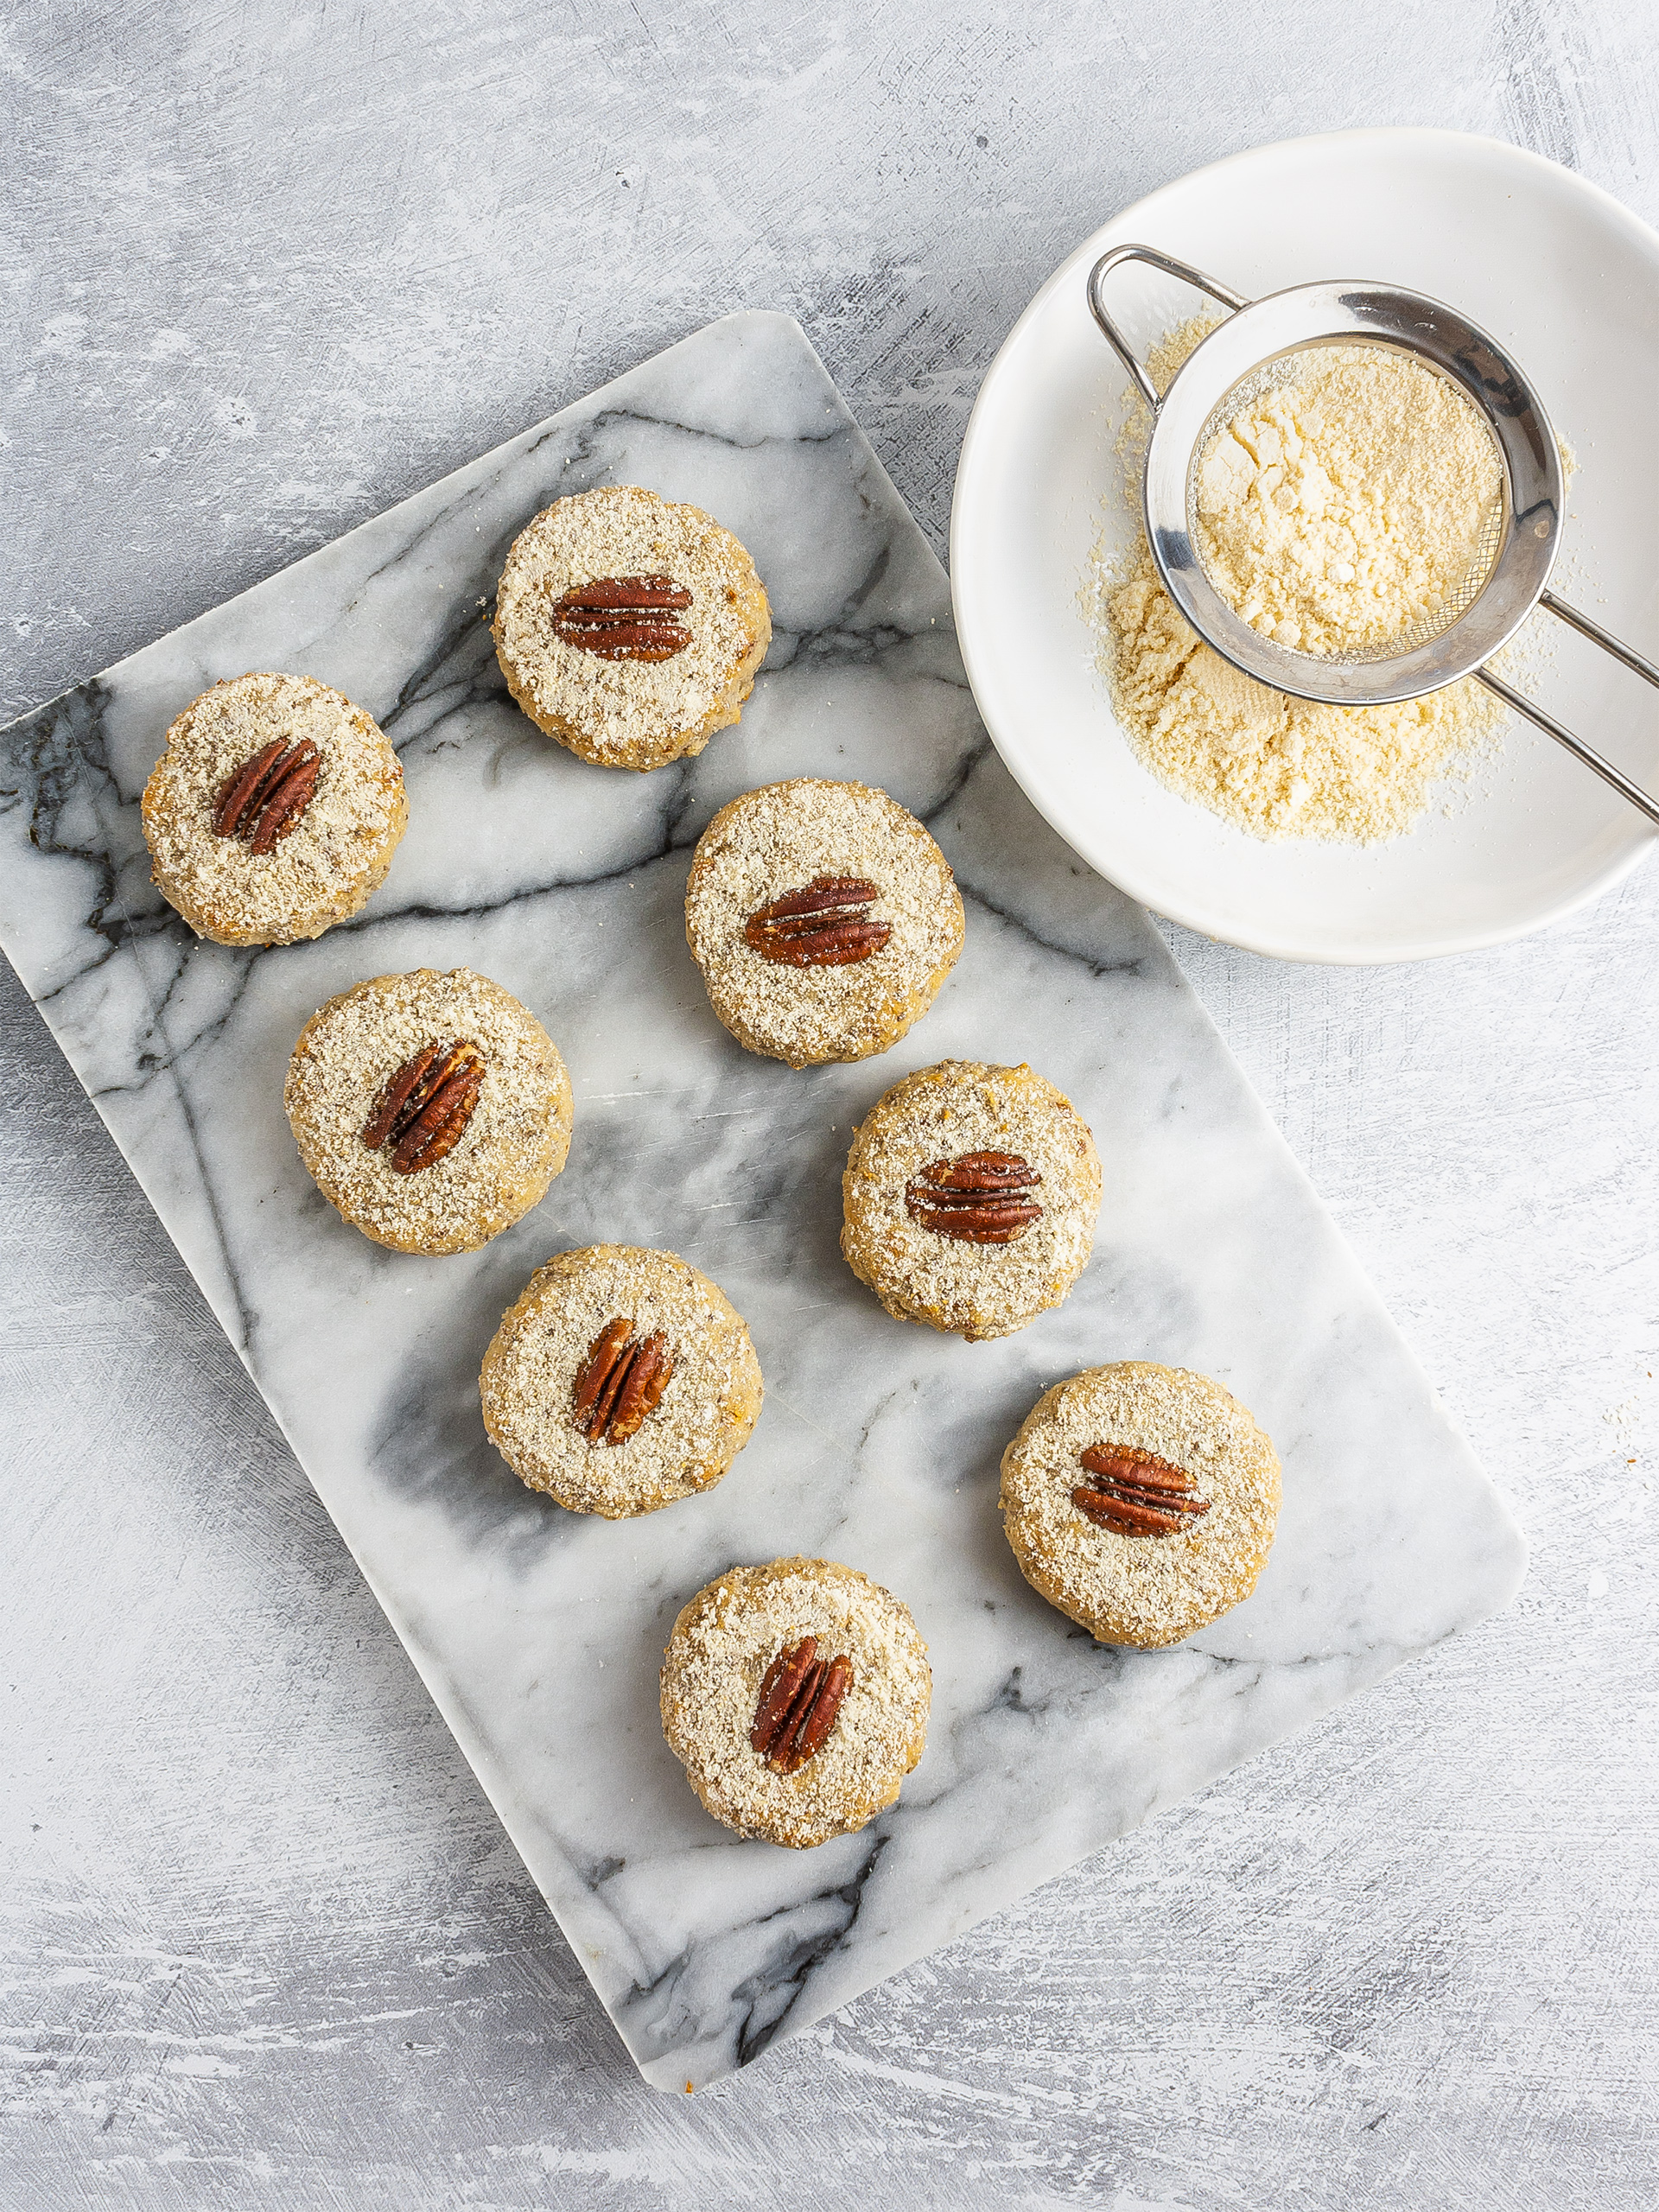 Baked pecan sandies dusted with almond meal